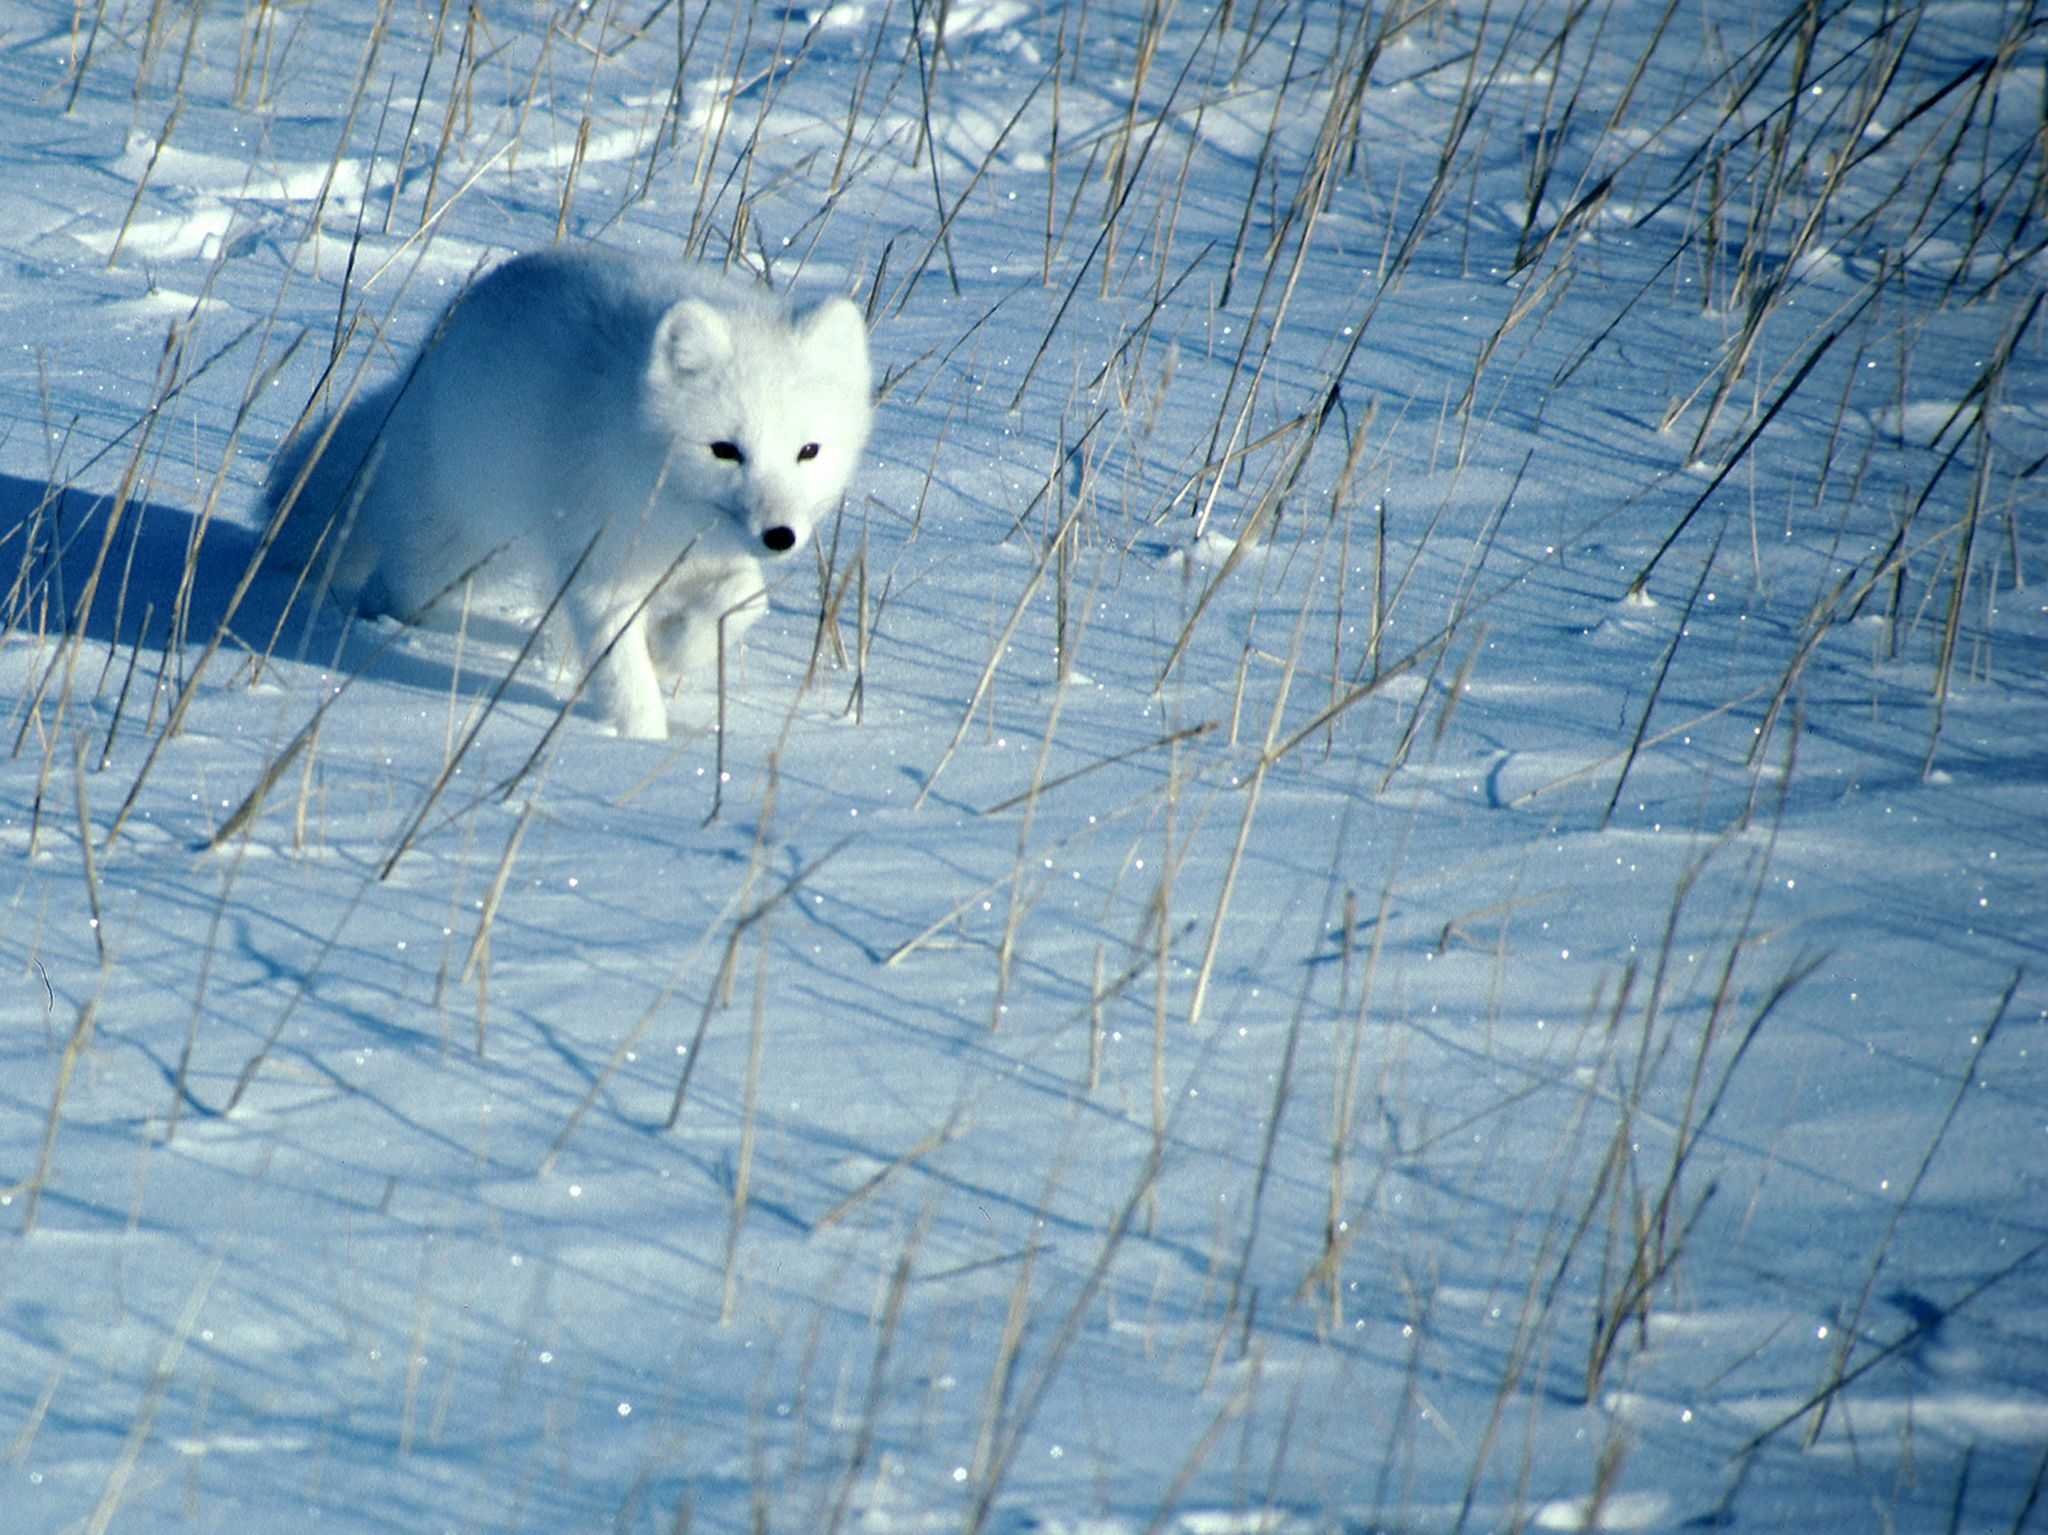 A polar fox runs across the snow. This image is from Planet Carnivore: Perfect Killers. [Photo of the day - June 2017]